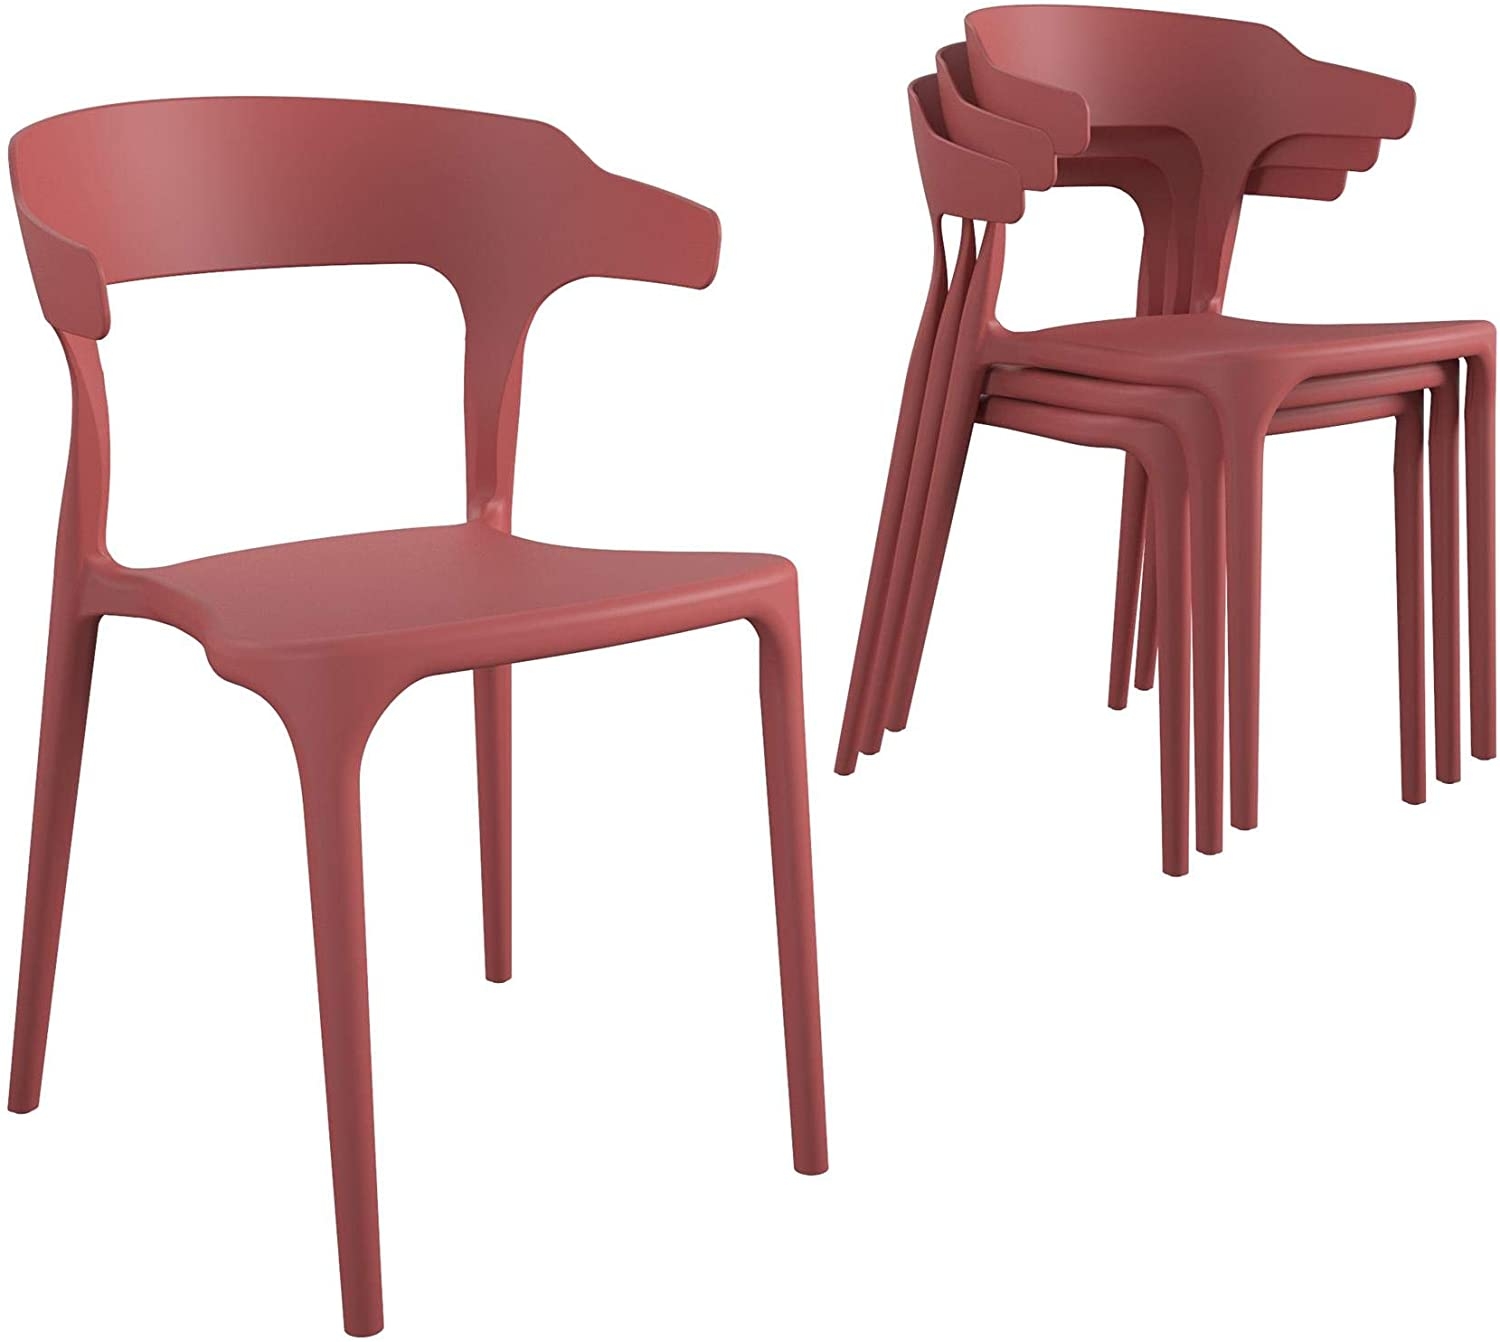 Novogratz Poolside Collection, Felix Stacking, 4-Pack, Persimmon Dining Chairs